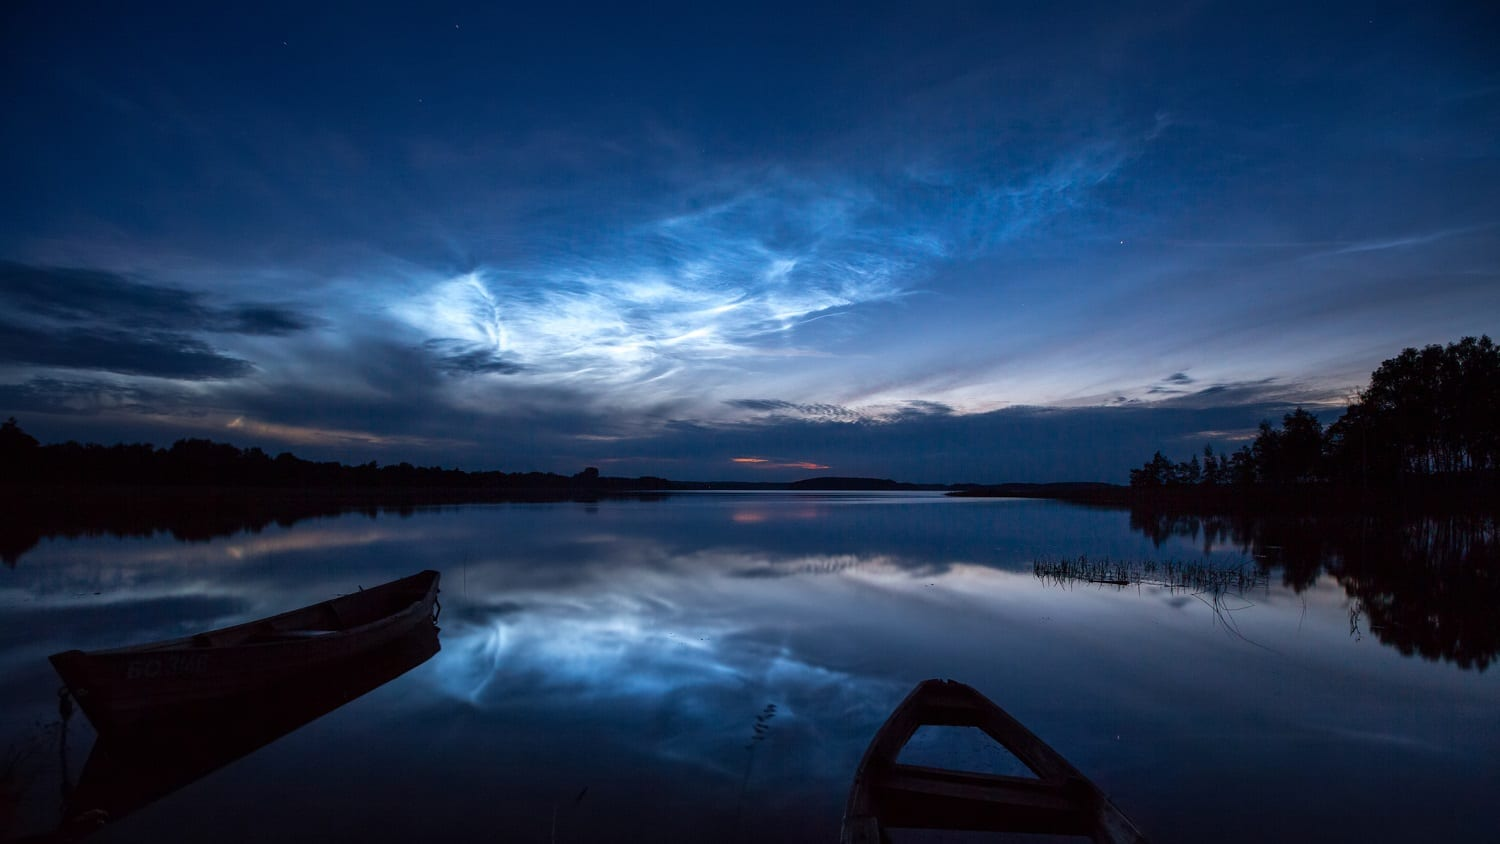 Noctilucent clouds over a lake: Photo 132502629 © Viktarm | Dreamstime.com